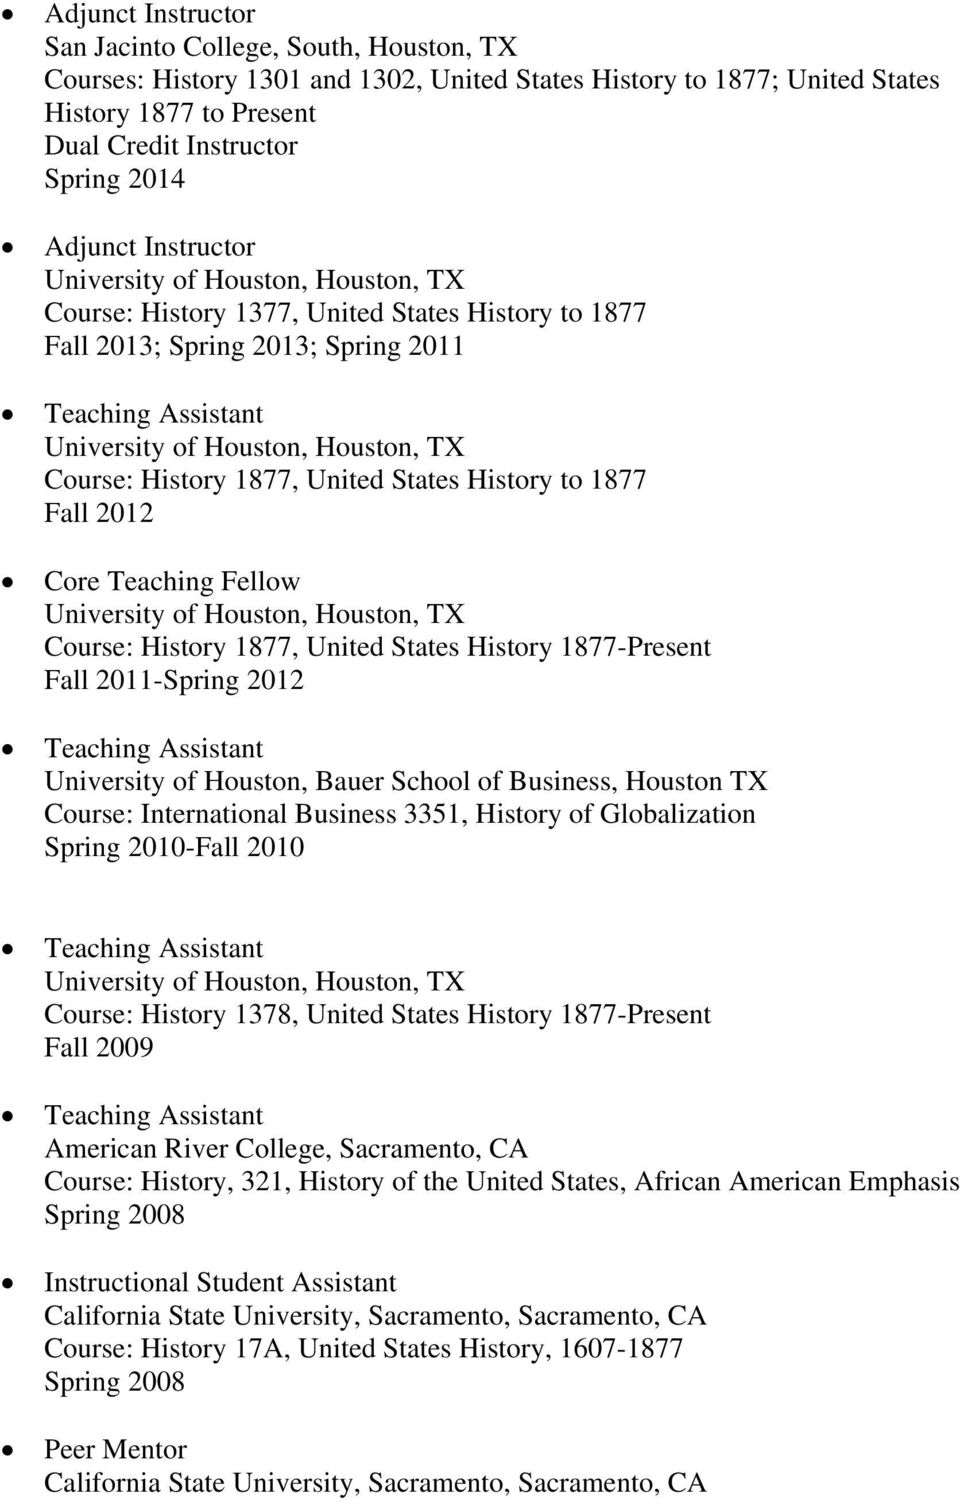 History 1877, United States History 1877-Present Fall 2011-Spring 2012, Bauer School of Business, Houston TX Course: International Business 3351, History of Globalization Spring 2010-Fall 2010,